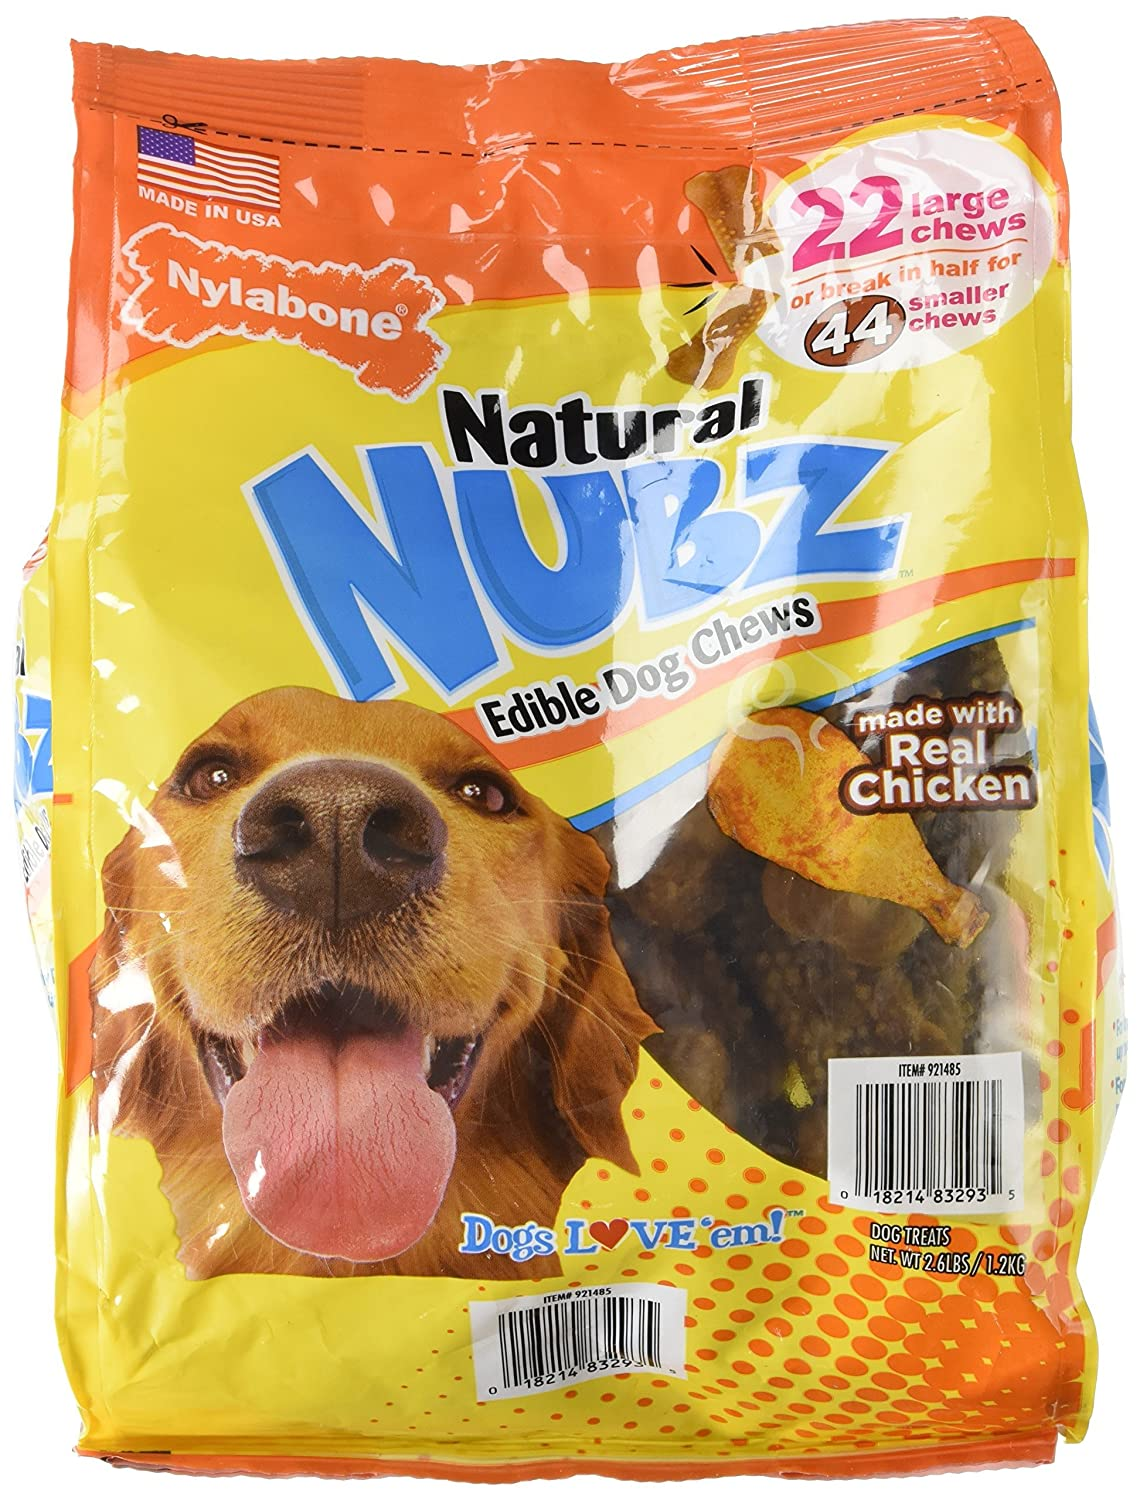 Nylabone Nubz Natural Dog Chew Treats